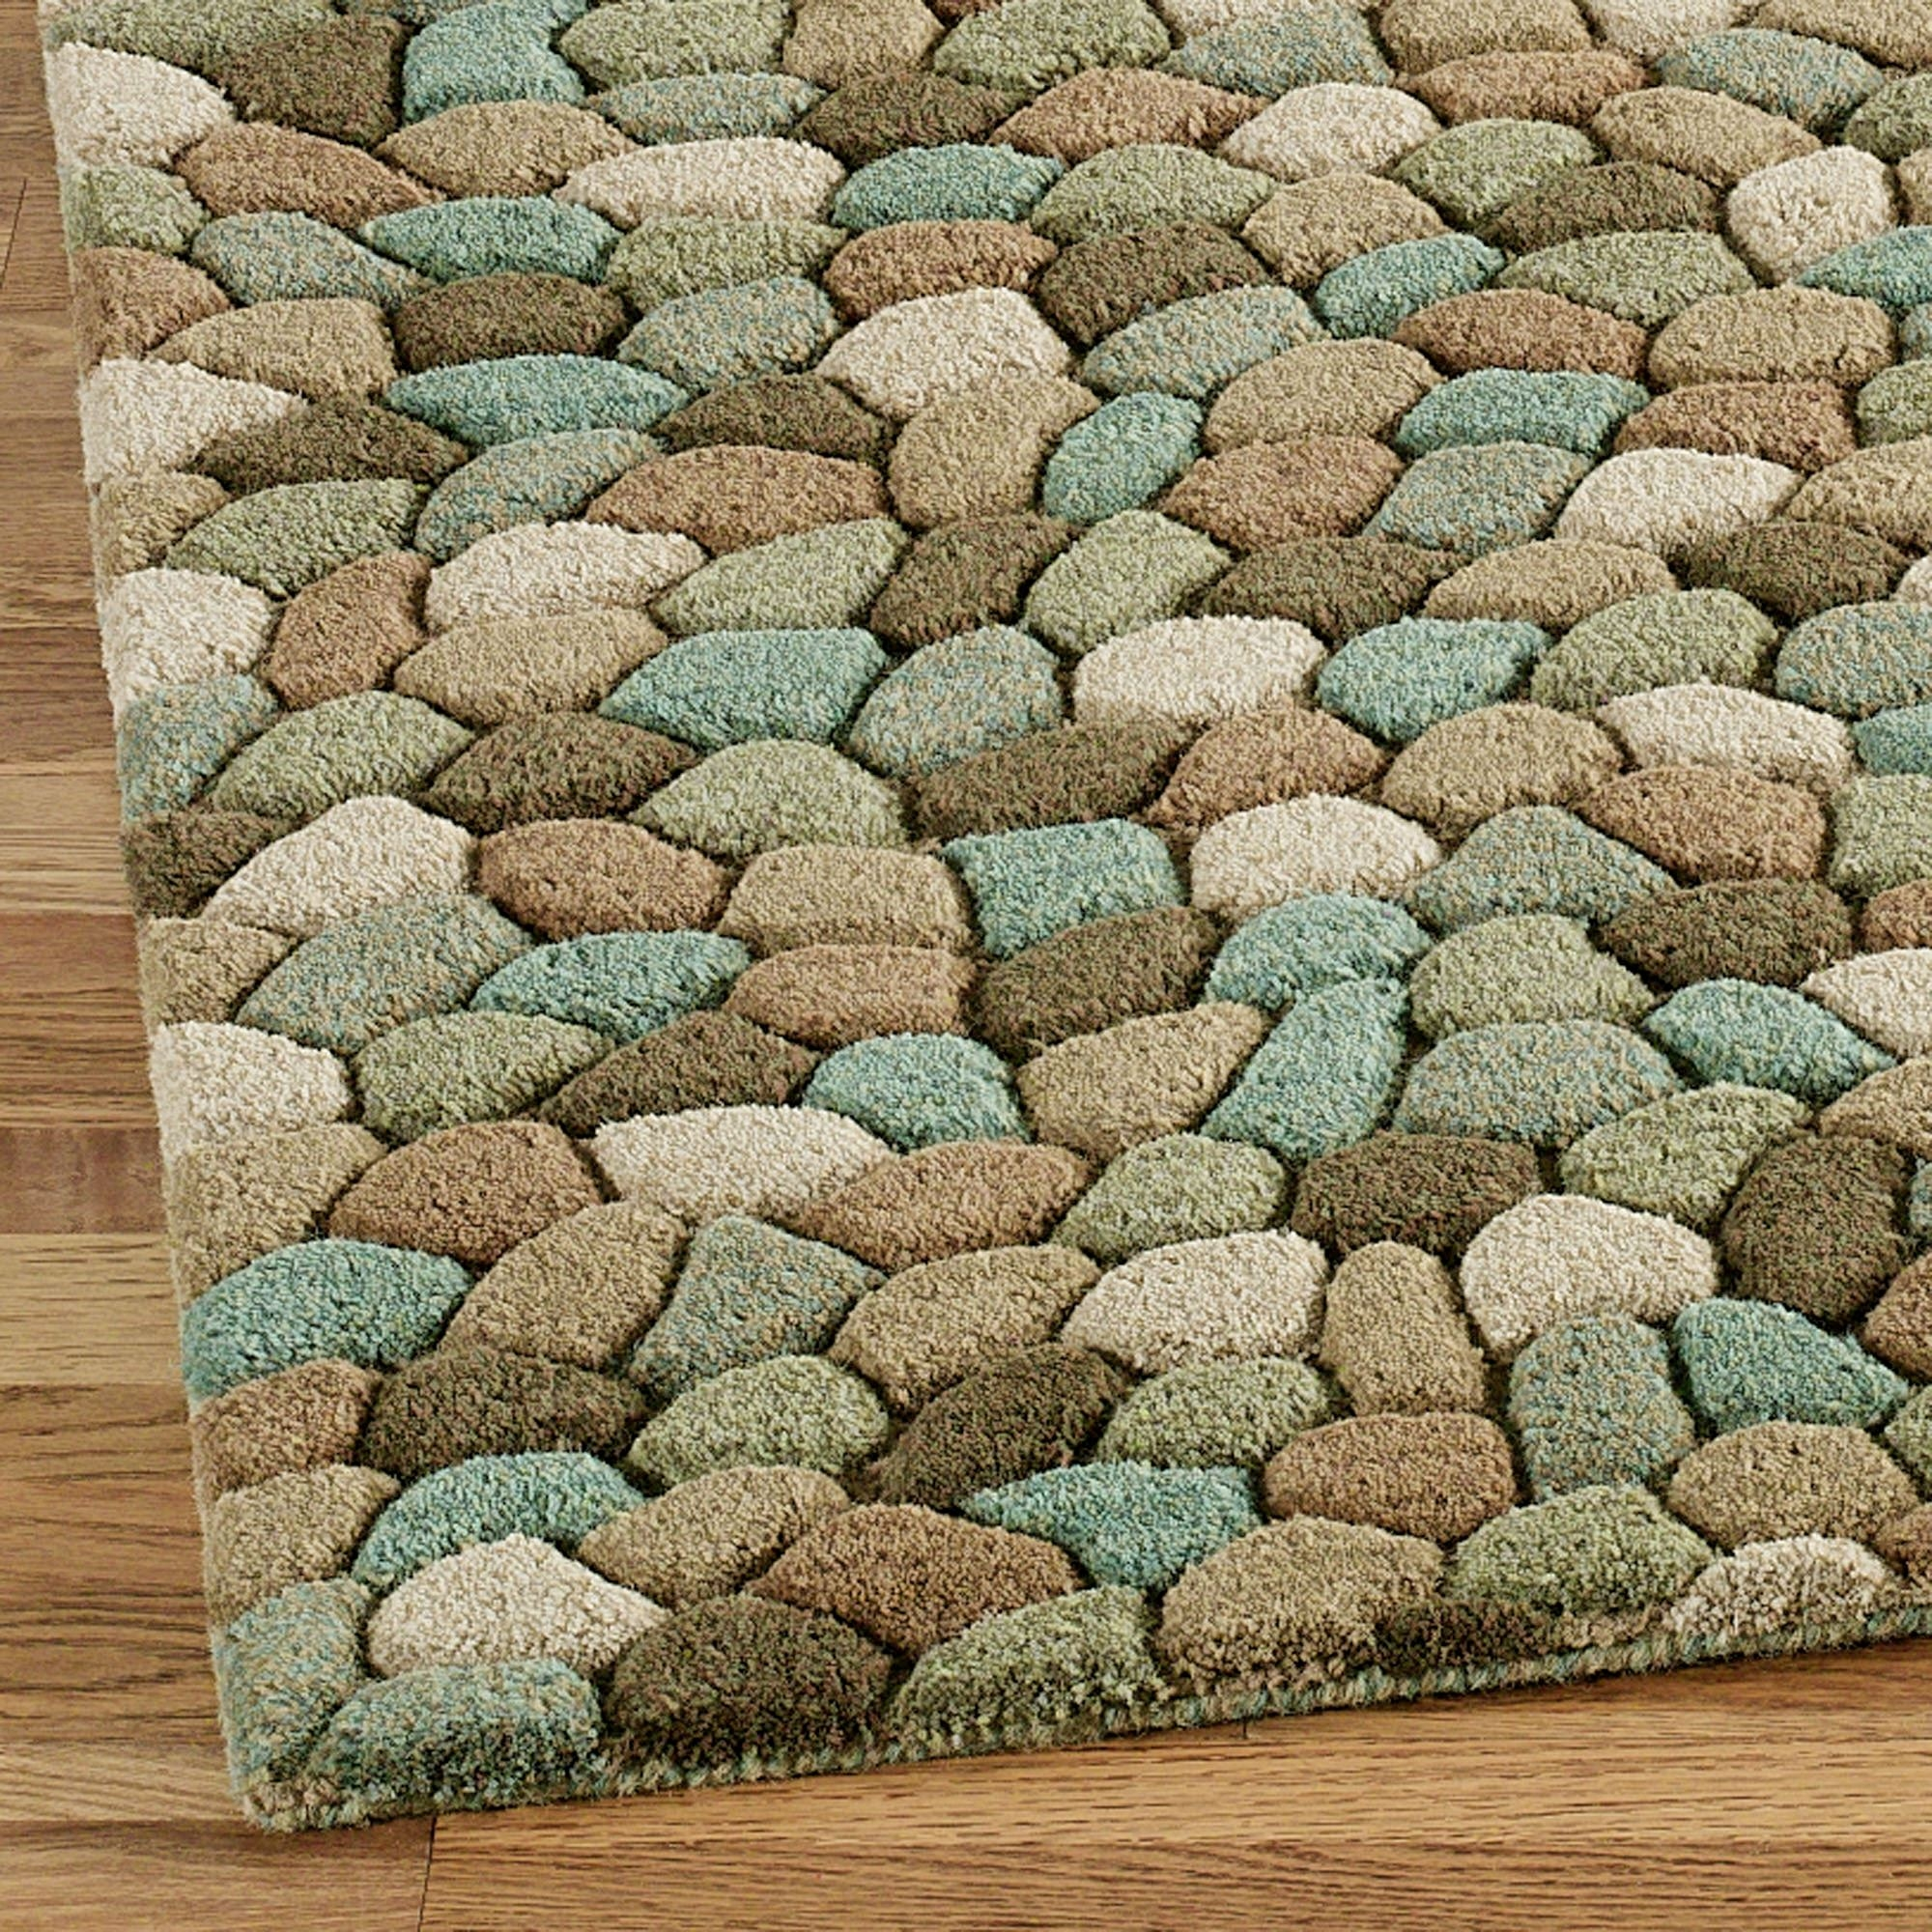 Pebble Area Rugs Regarding Pebble Rugs (Image 5 of 15)